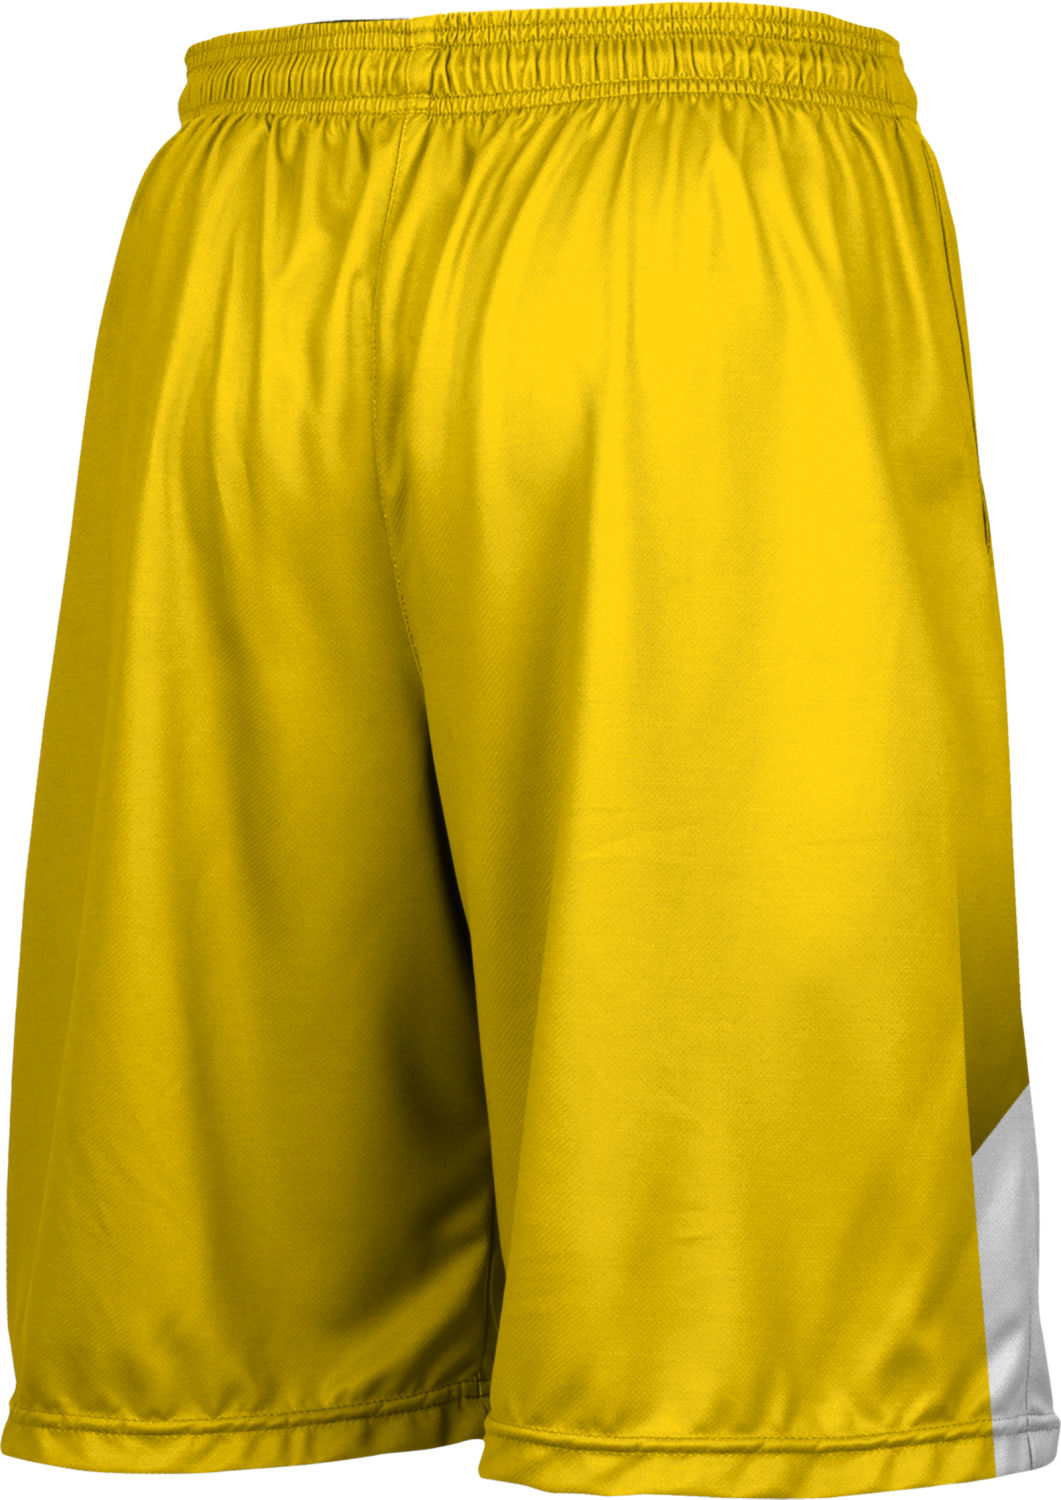 ProSphere Appalachian State University Mens 11 Knit Short Secondskin